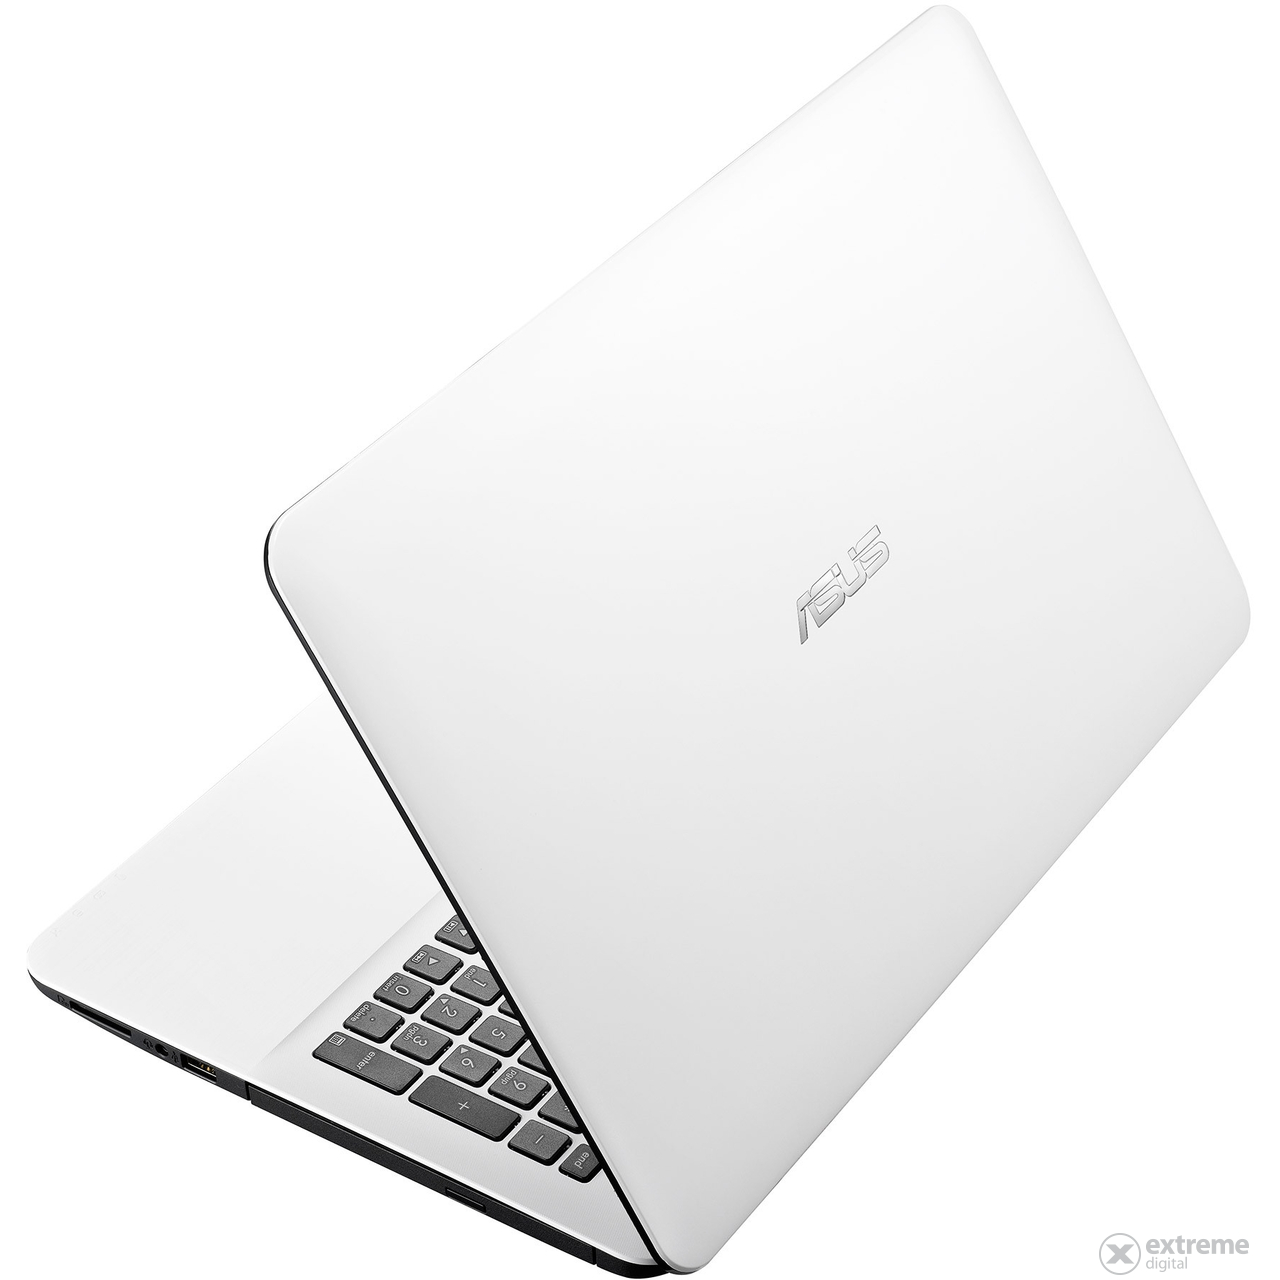 asus-x554lj-xo502t-notebook-windows-10-feher_86487fa7.jpg